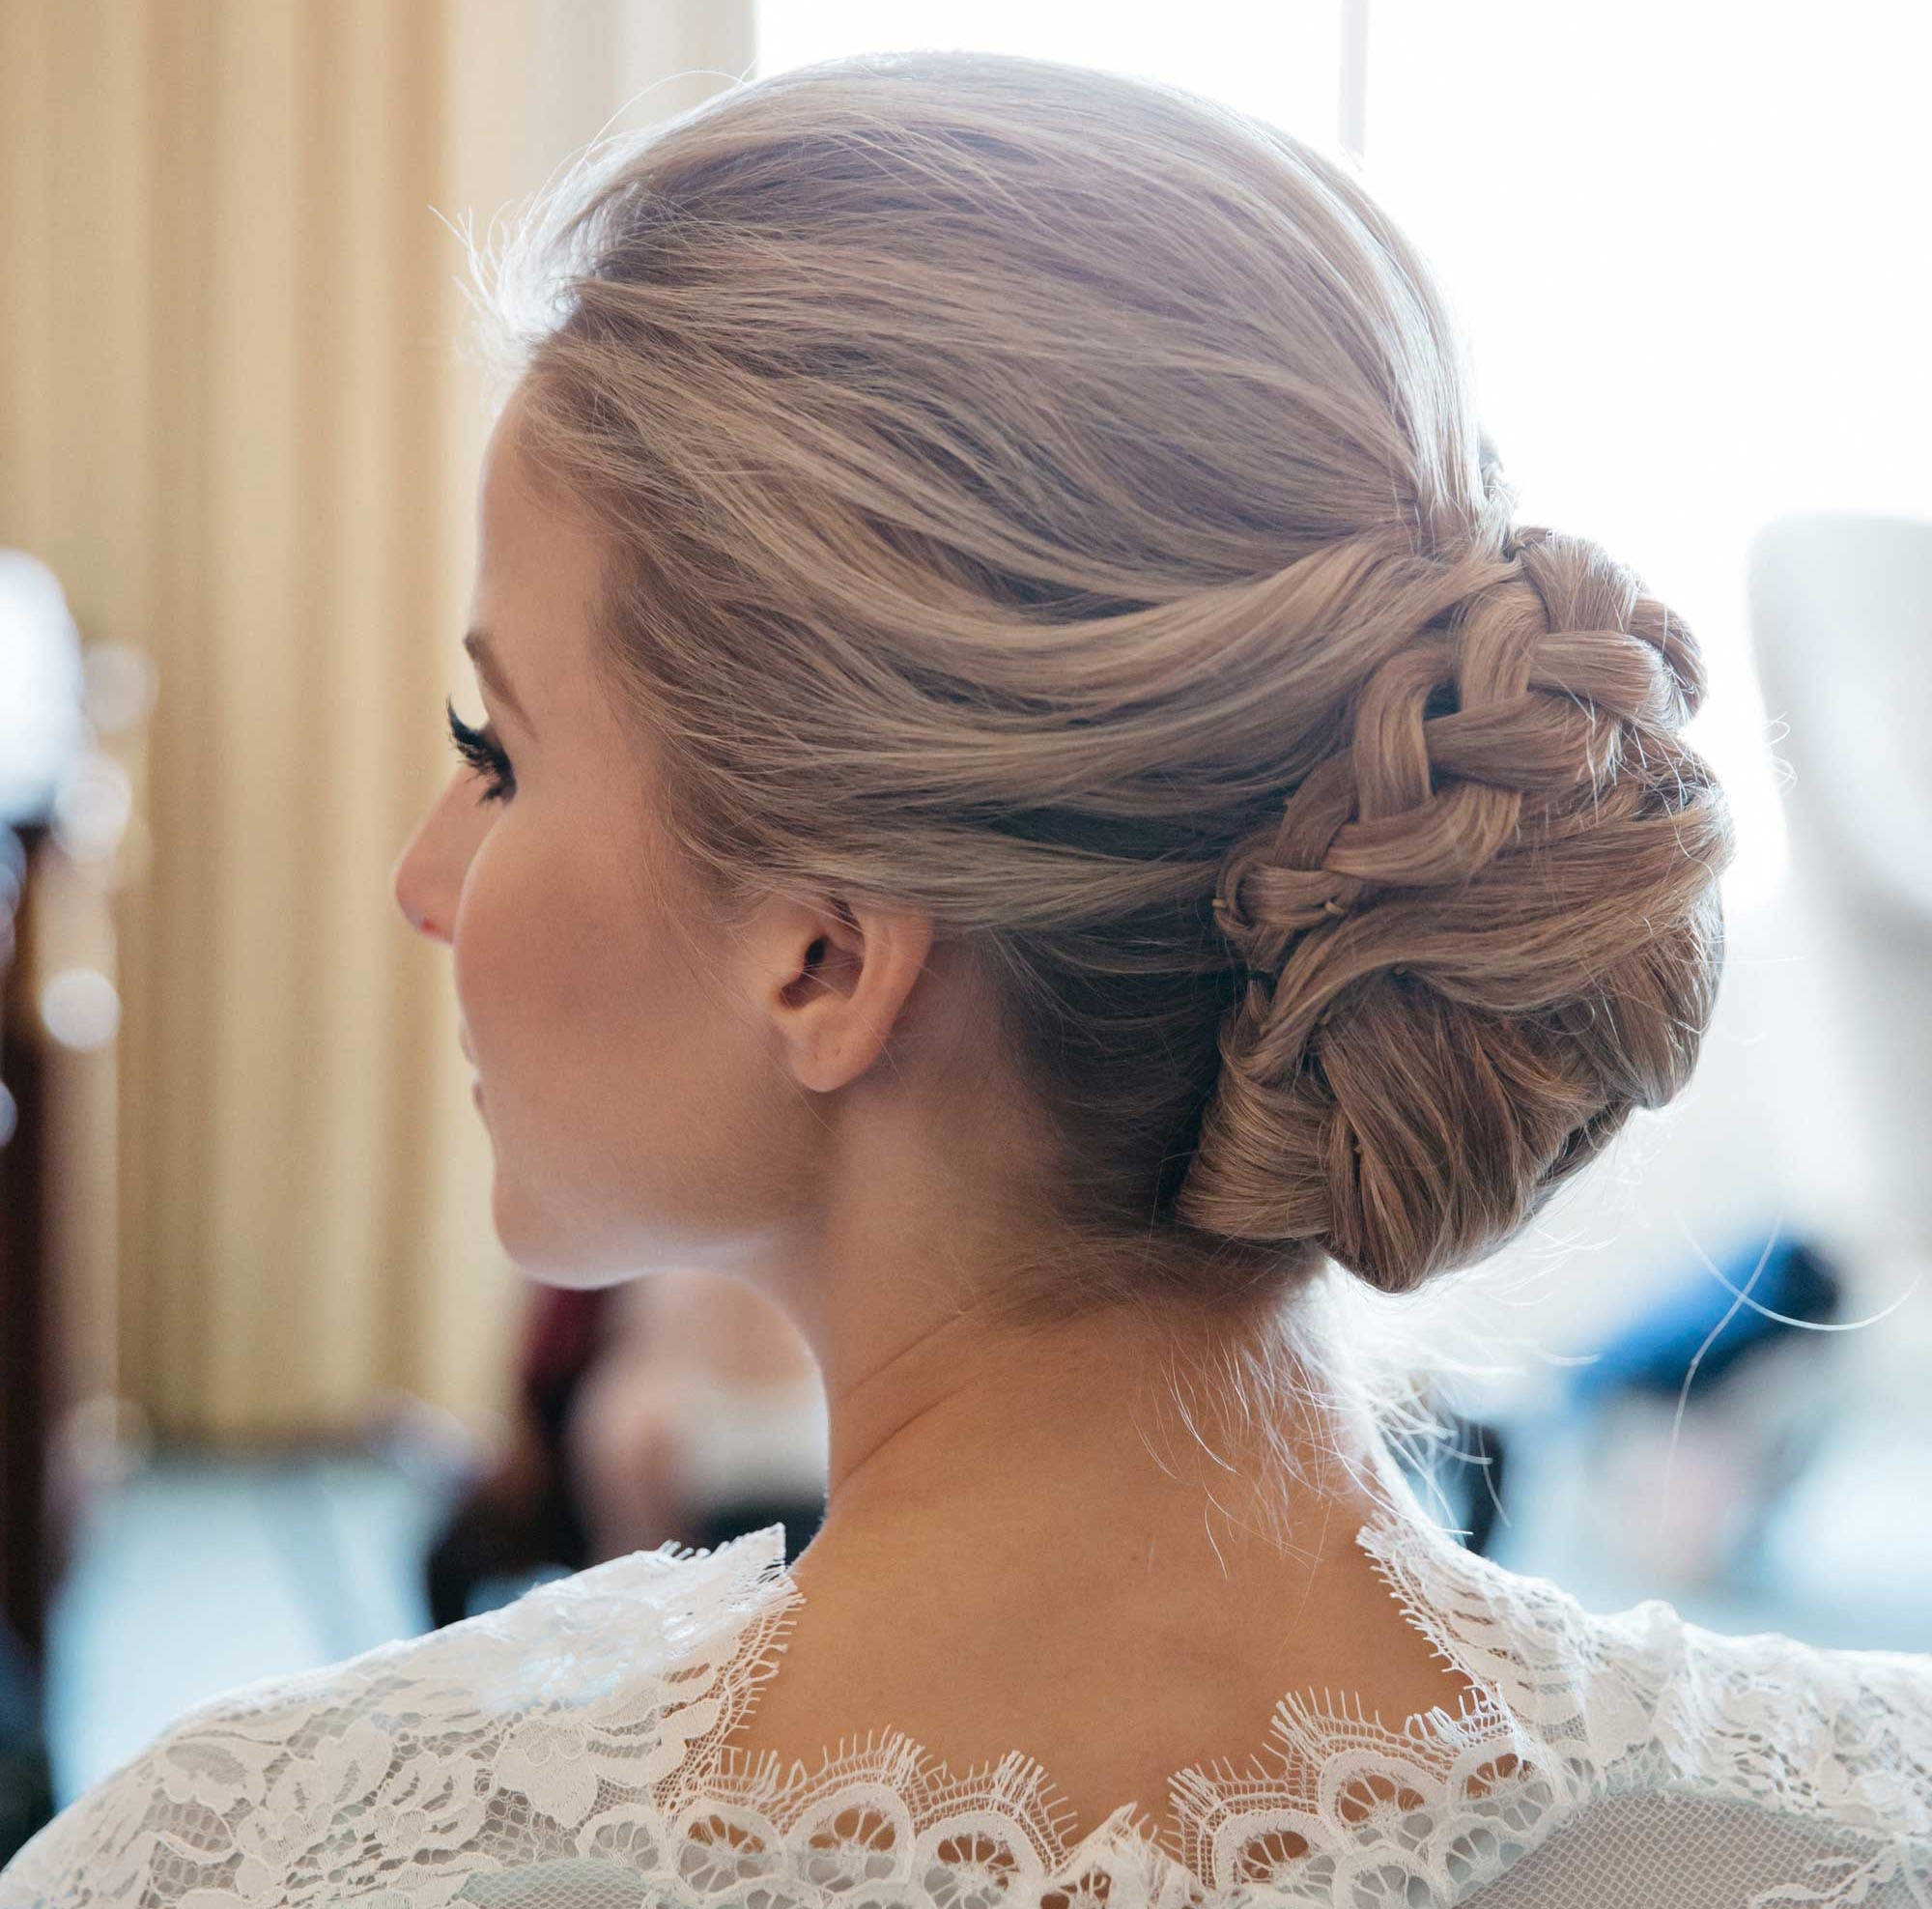 Latest Updo Braided Hairstyles With Braided Hairstyles: 5 Ideas For Your Wedding Look – Inside Weddings (View 13 of 15)